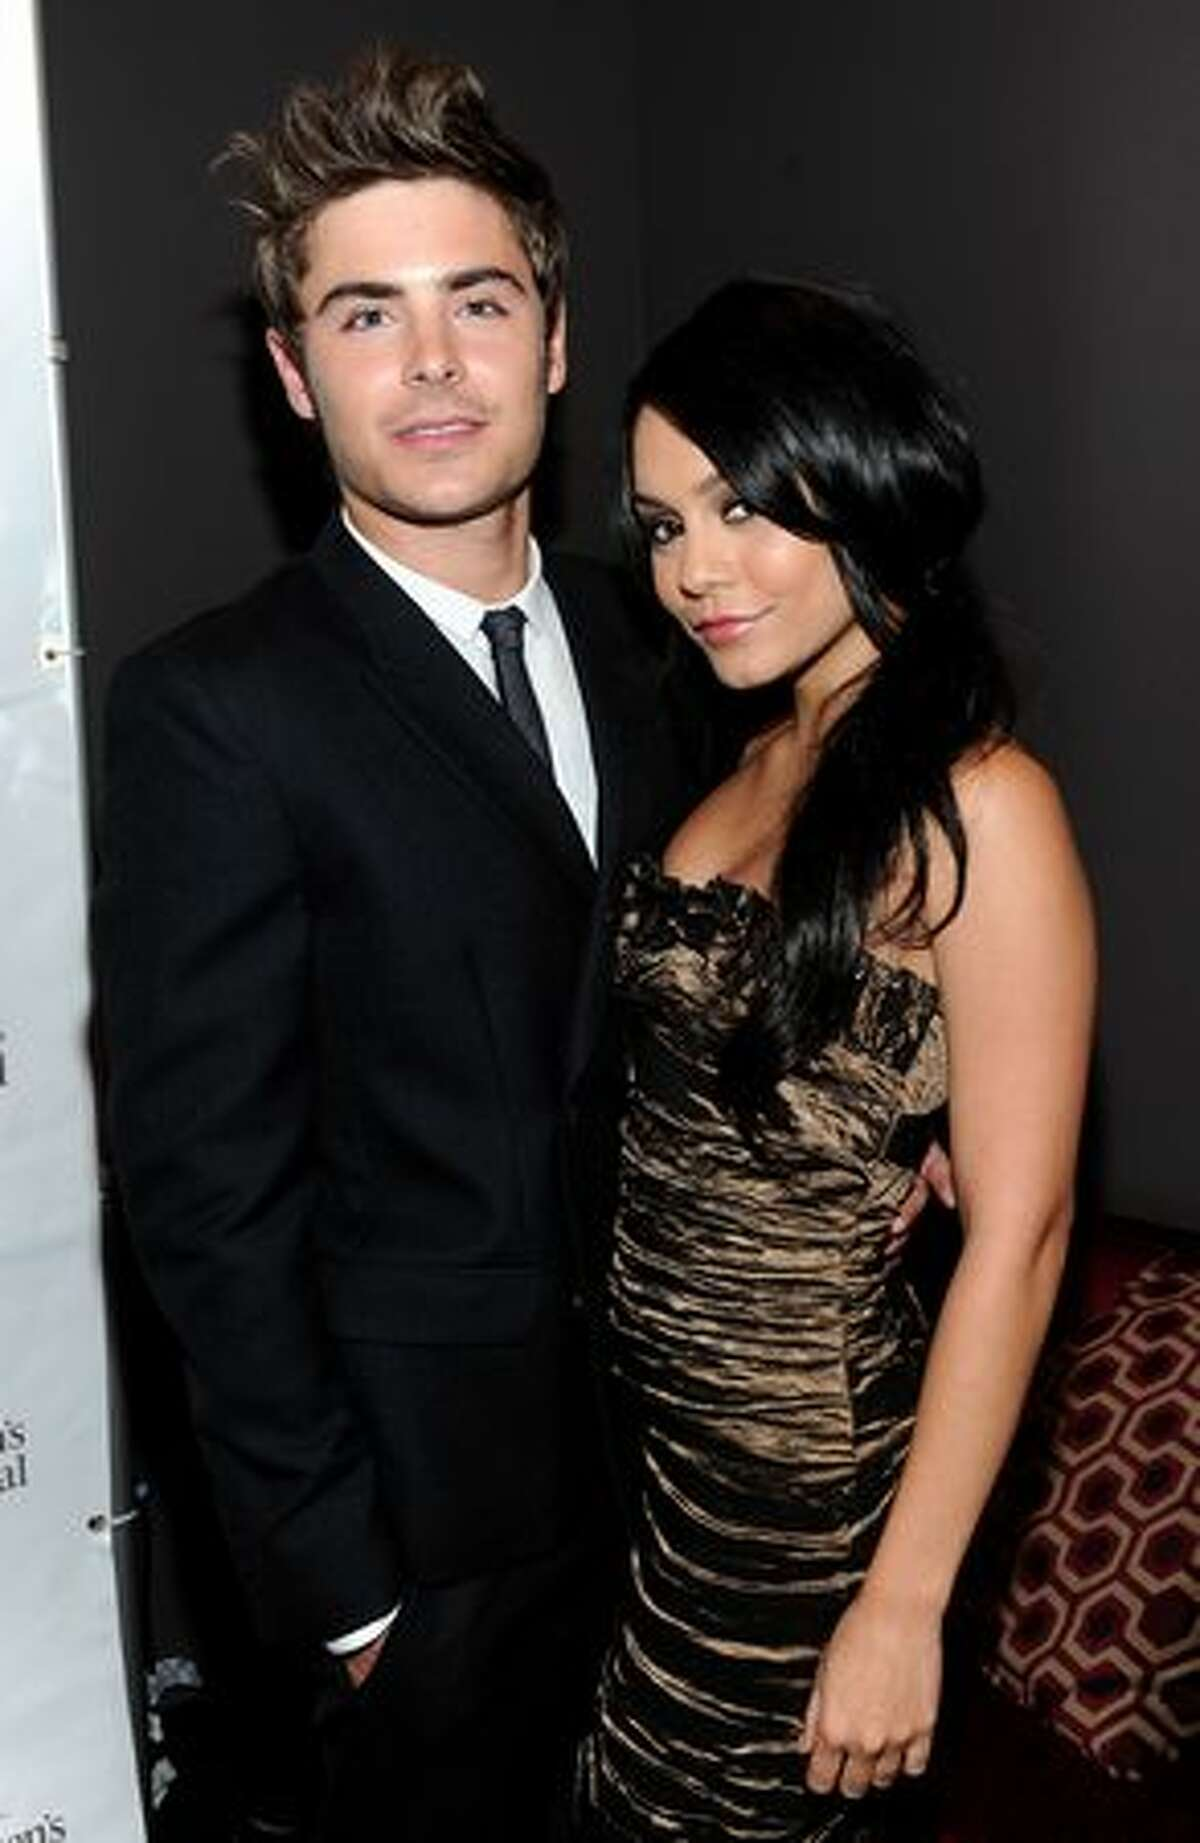 Actor Zac Efron and actress Vanessa Hudgens attend the inaugural St. Jude Children's Hospital's